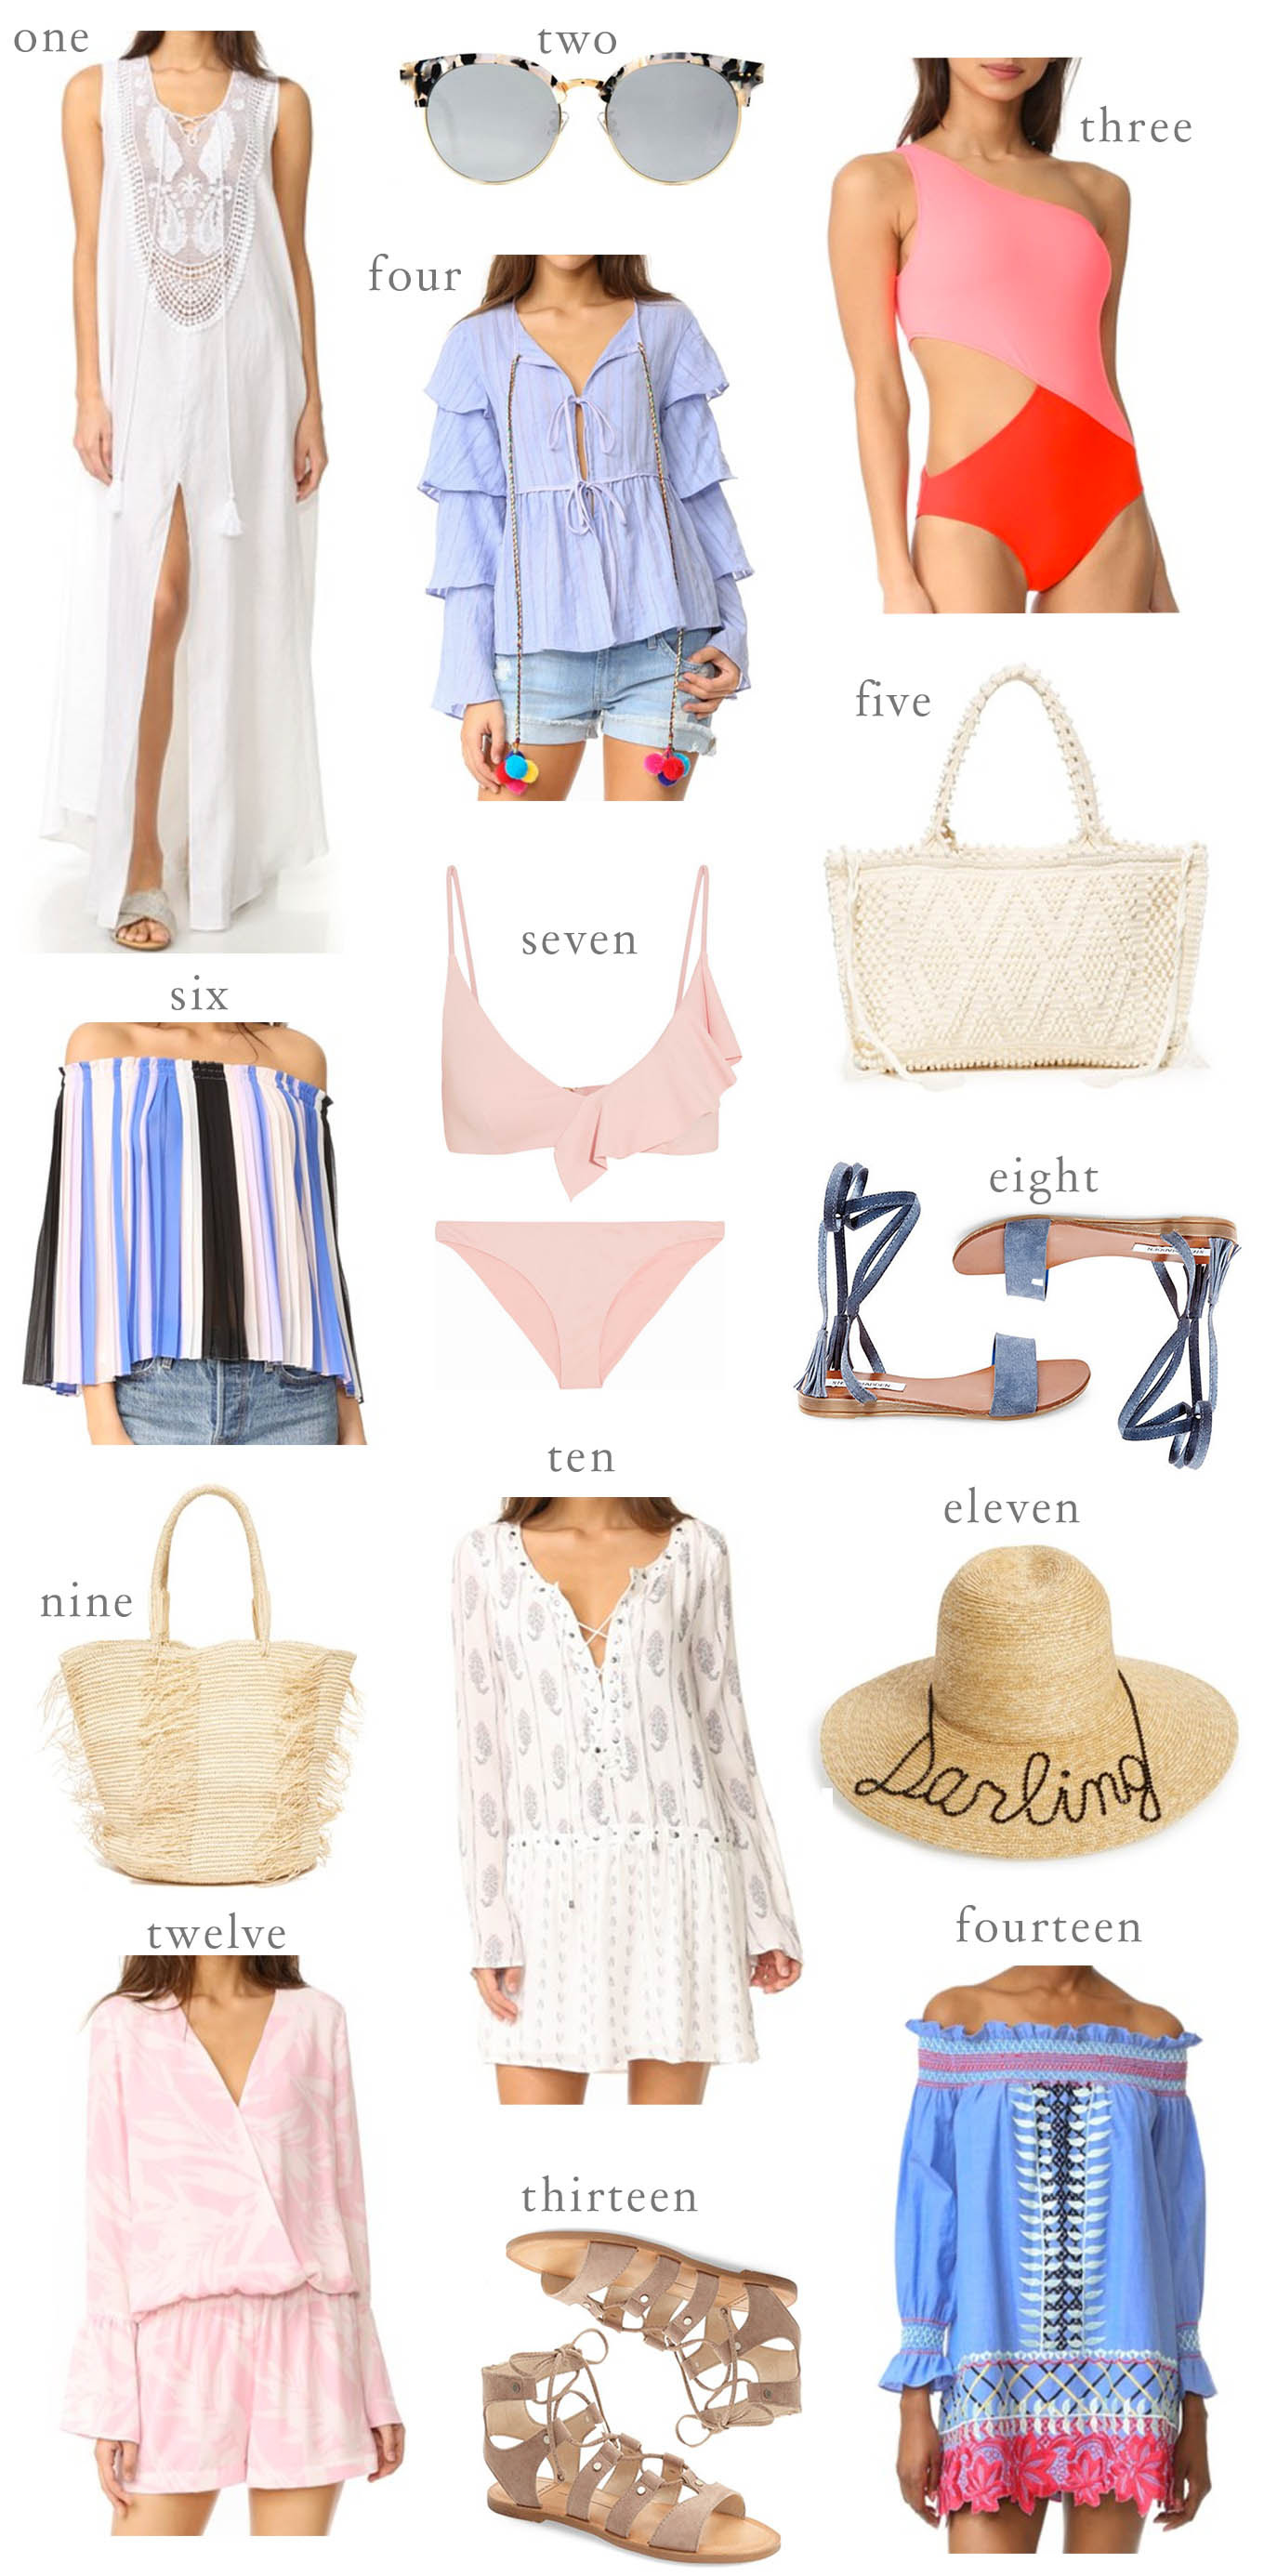 5 Things to Pack for Every Beach Vacation  Hello Fashion